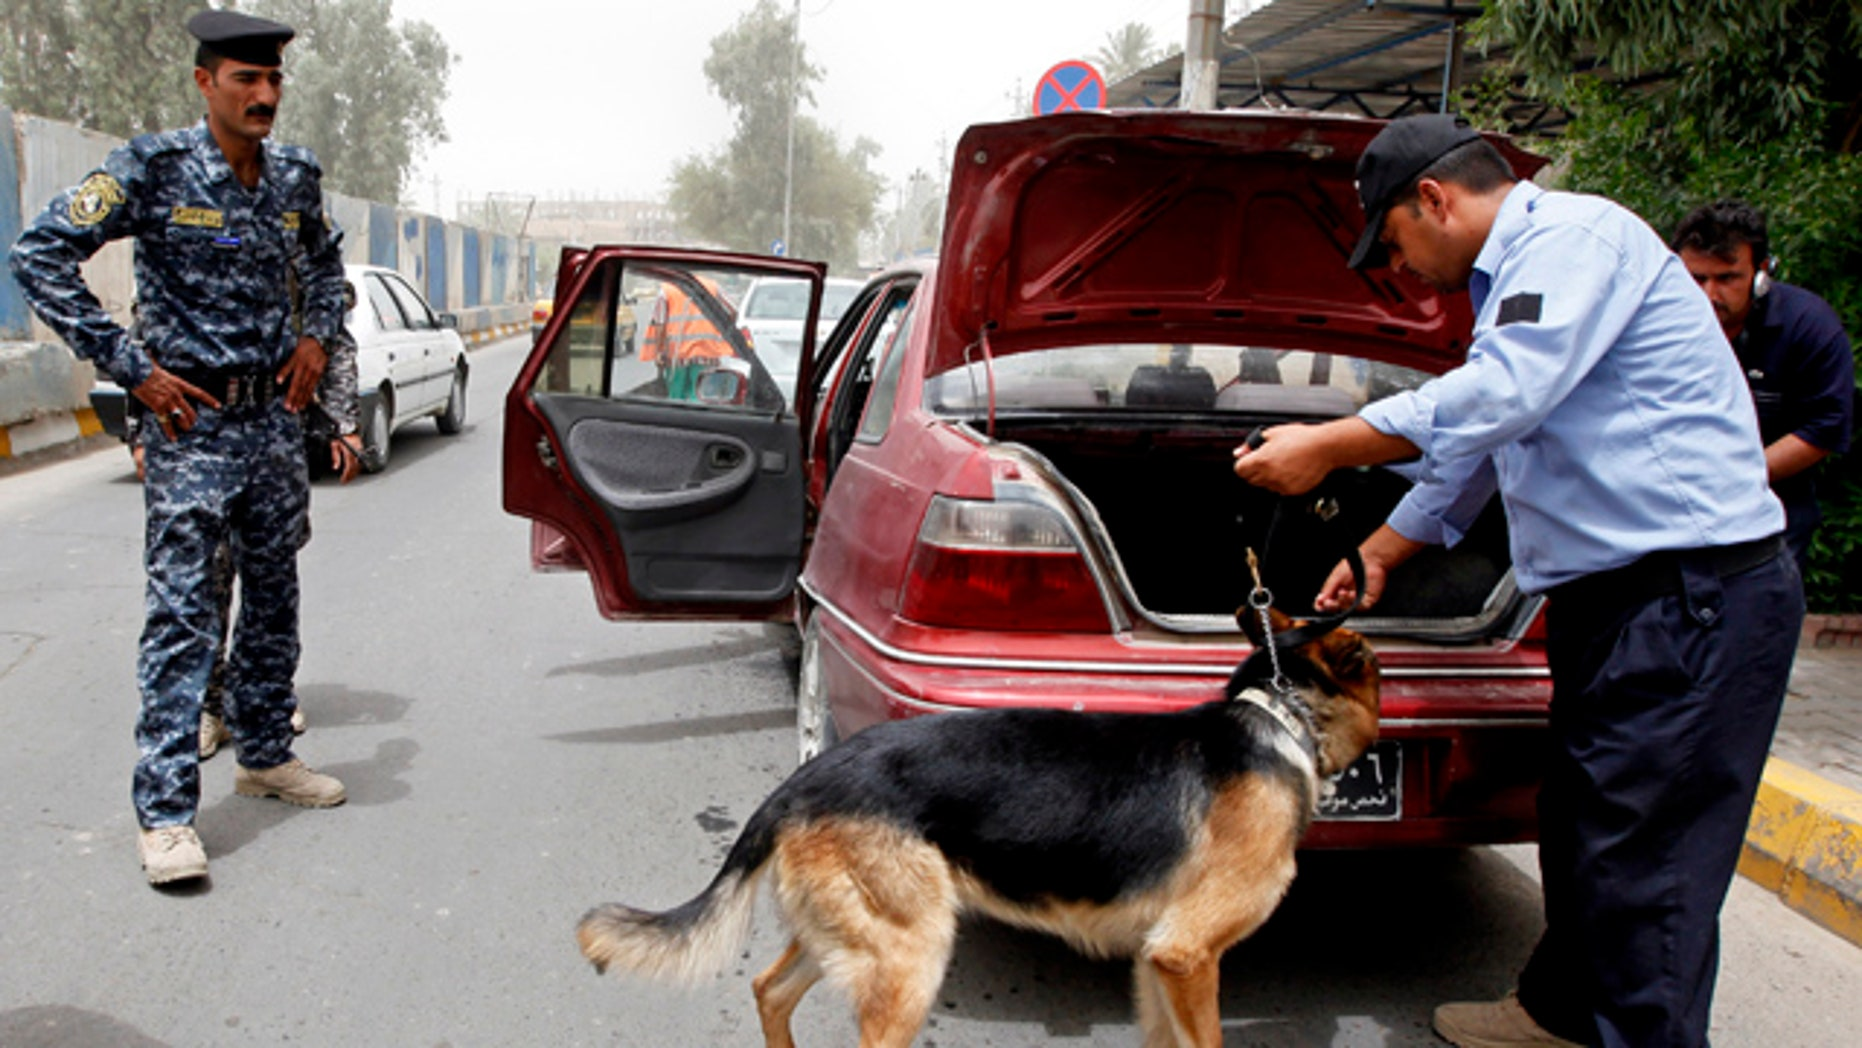 June 23: An Iraqi policeman uses a dog to search a car at a checkpoint in Baghdad, Iraq.